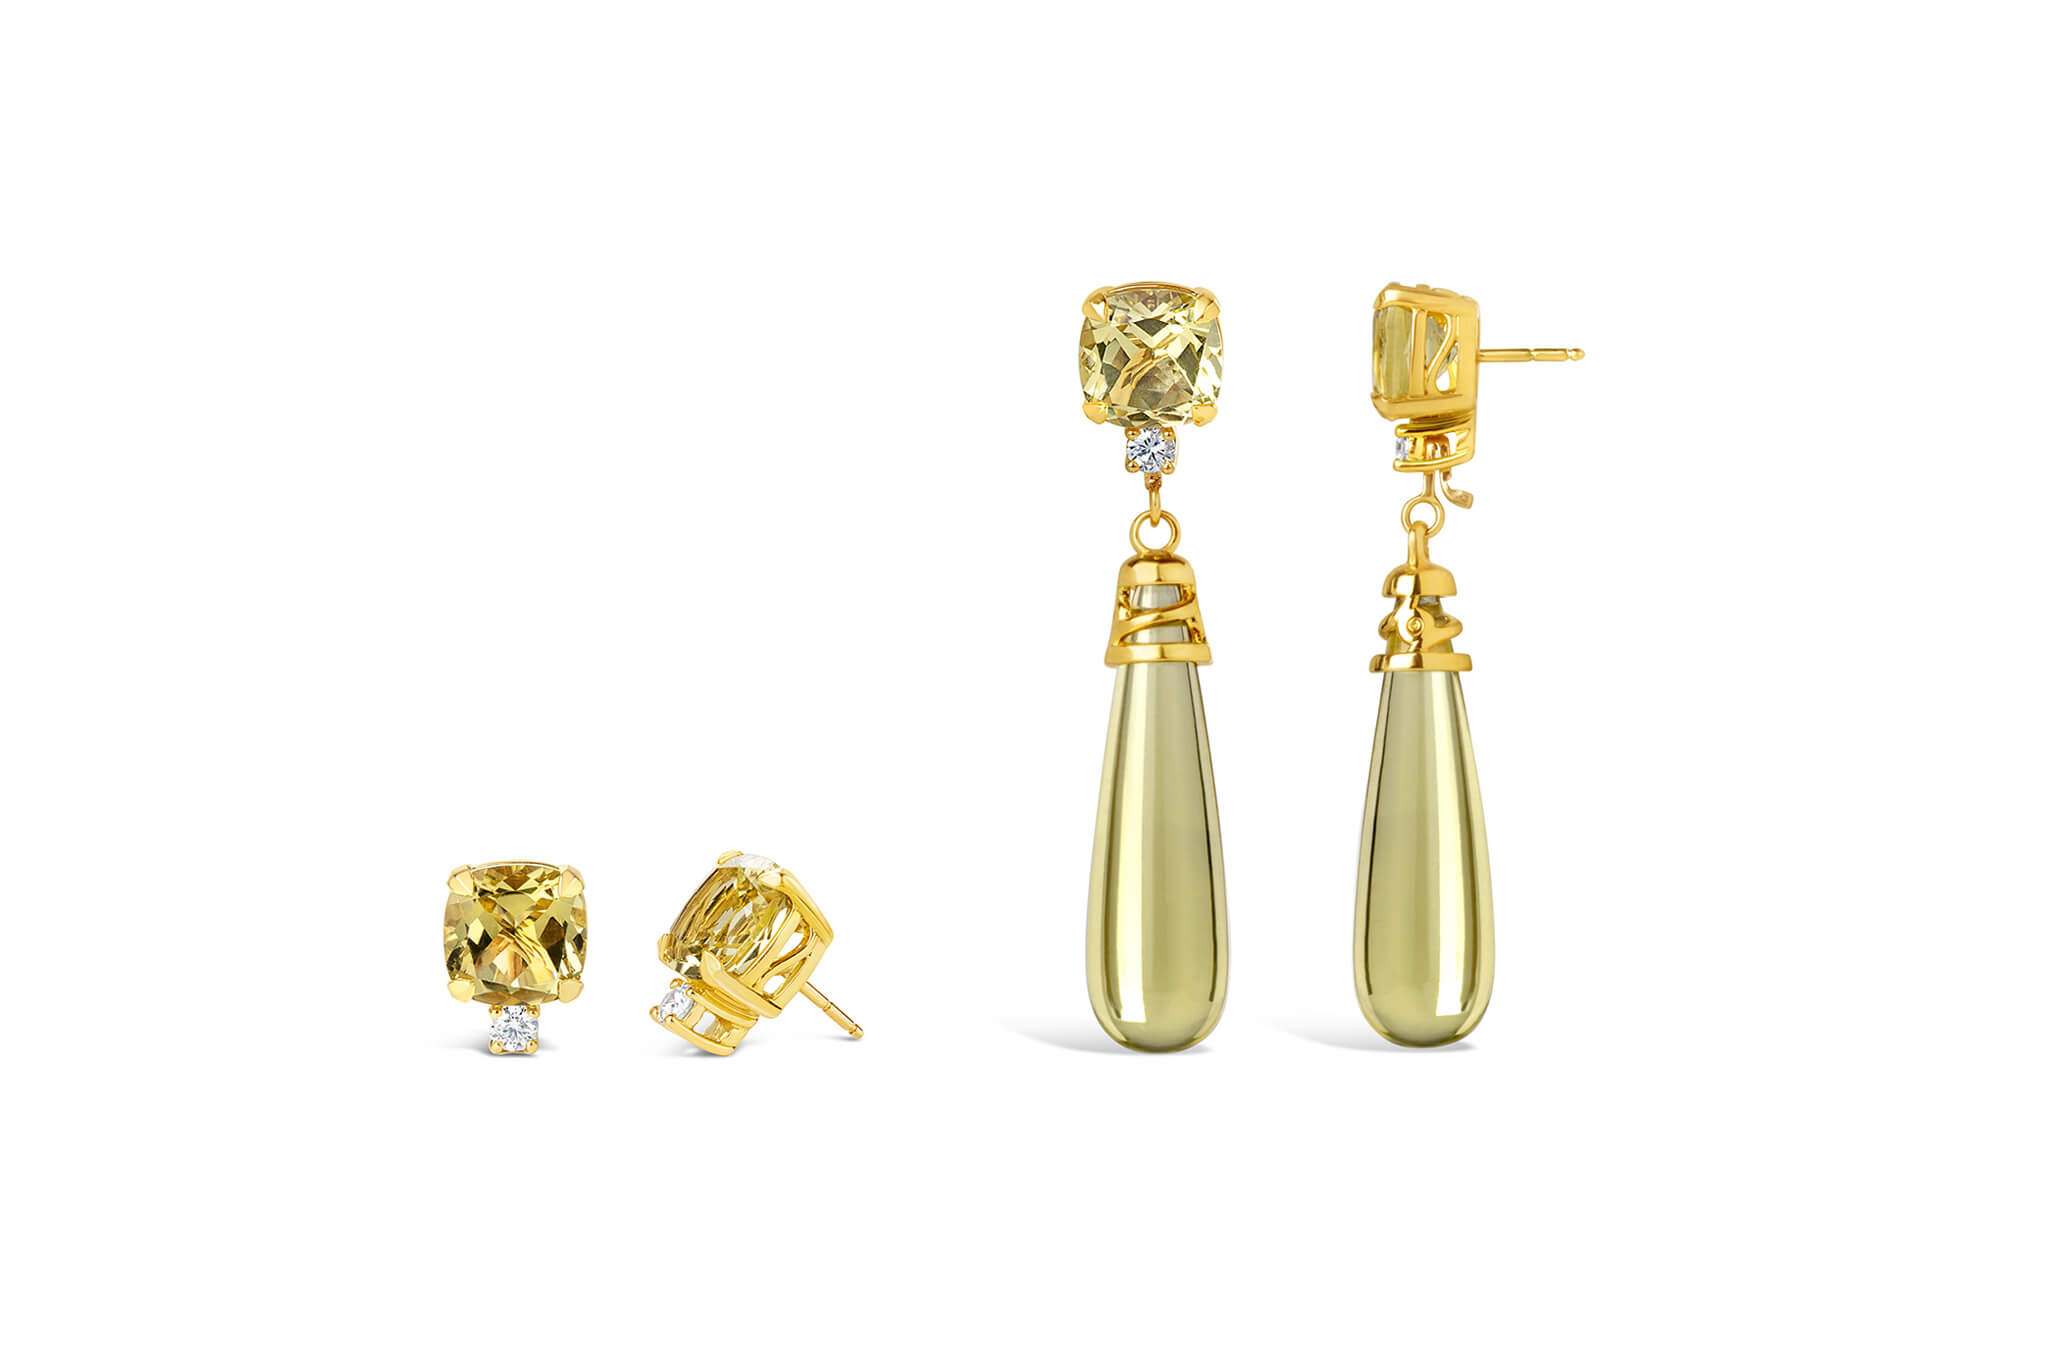 Moira Patience Jewellery - Diamond and Lemon Quartz Earrings